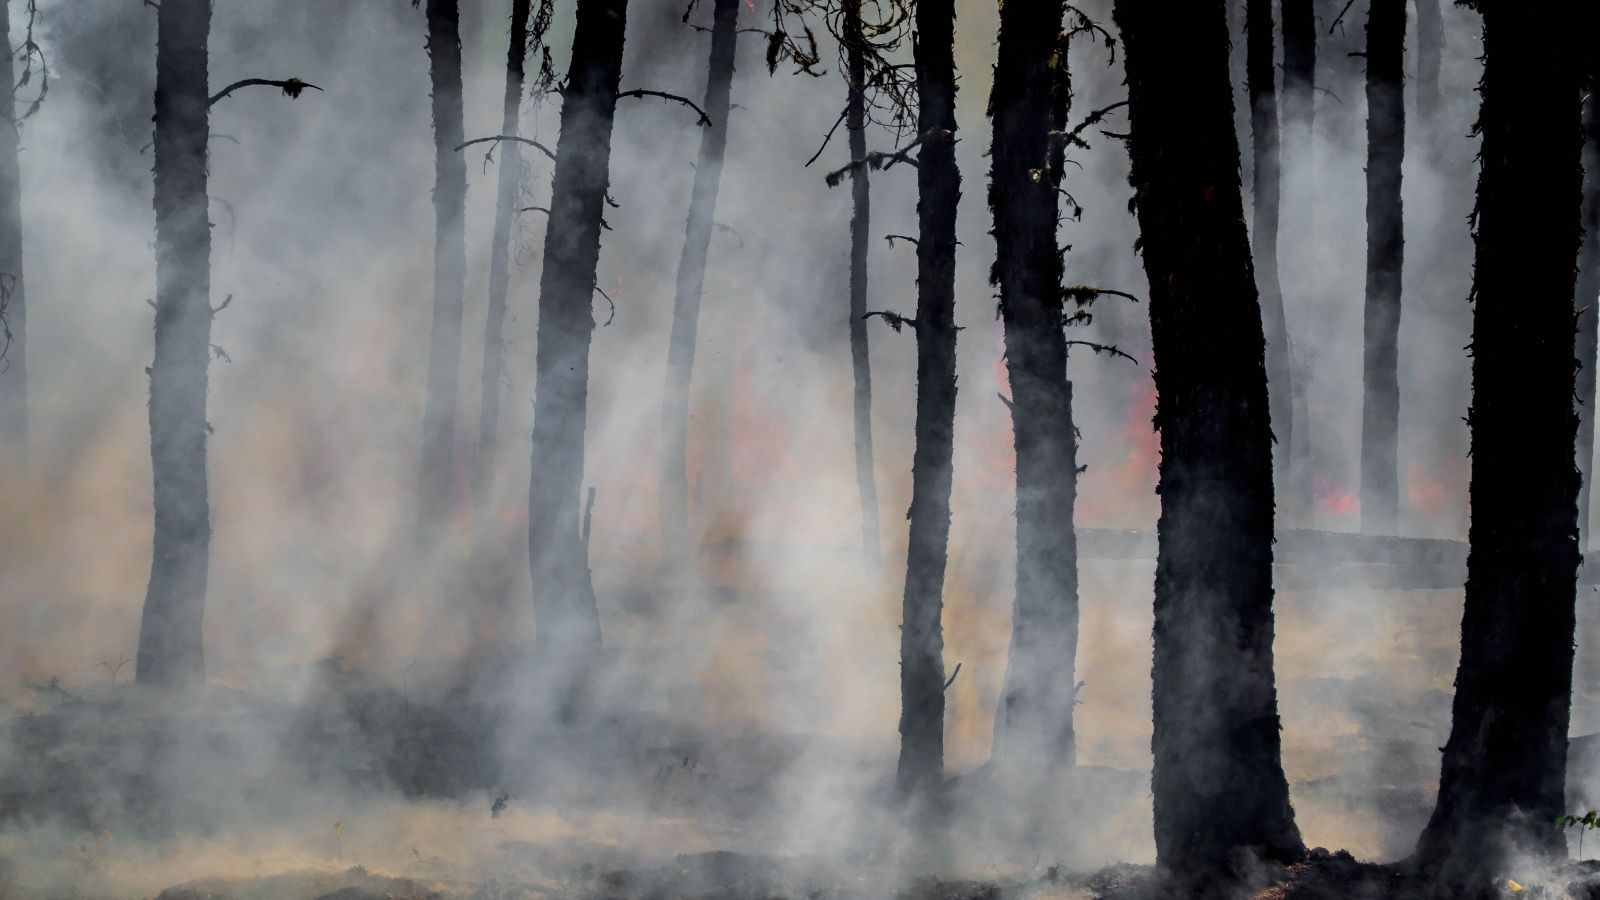 Burnt trees and ash in a forest after a fire